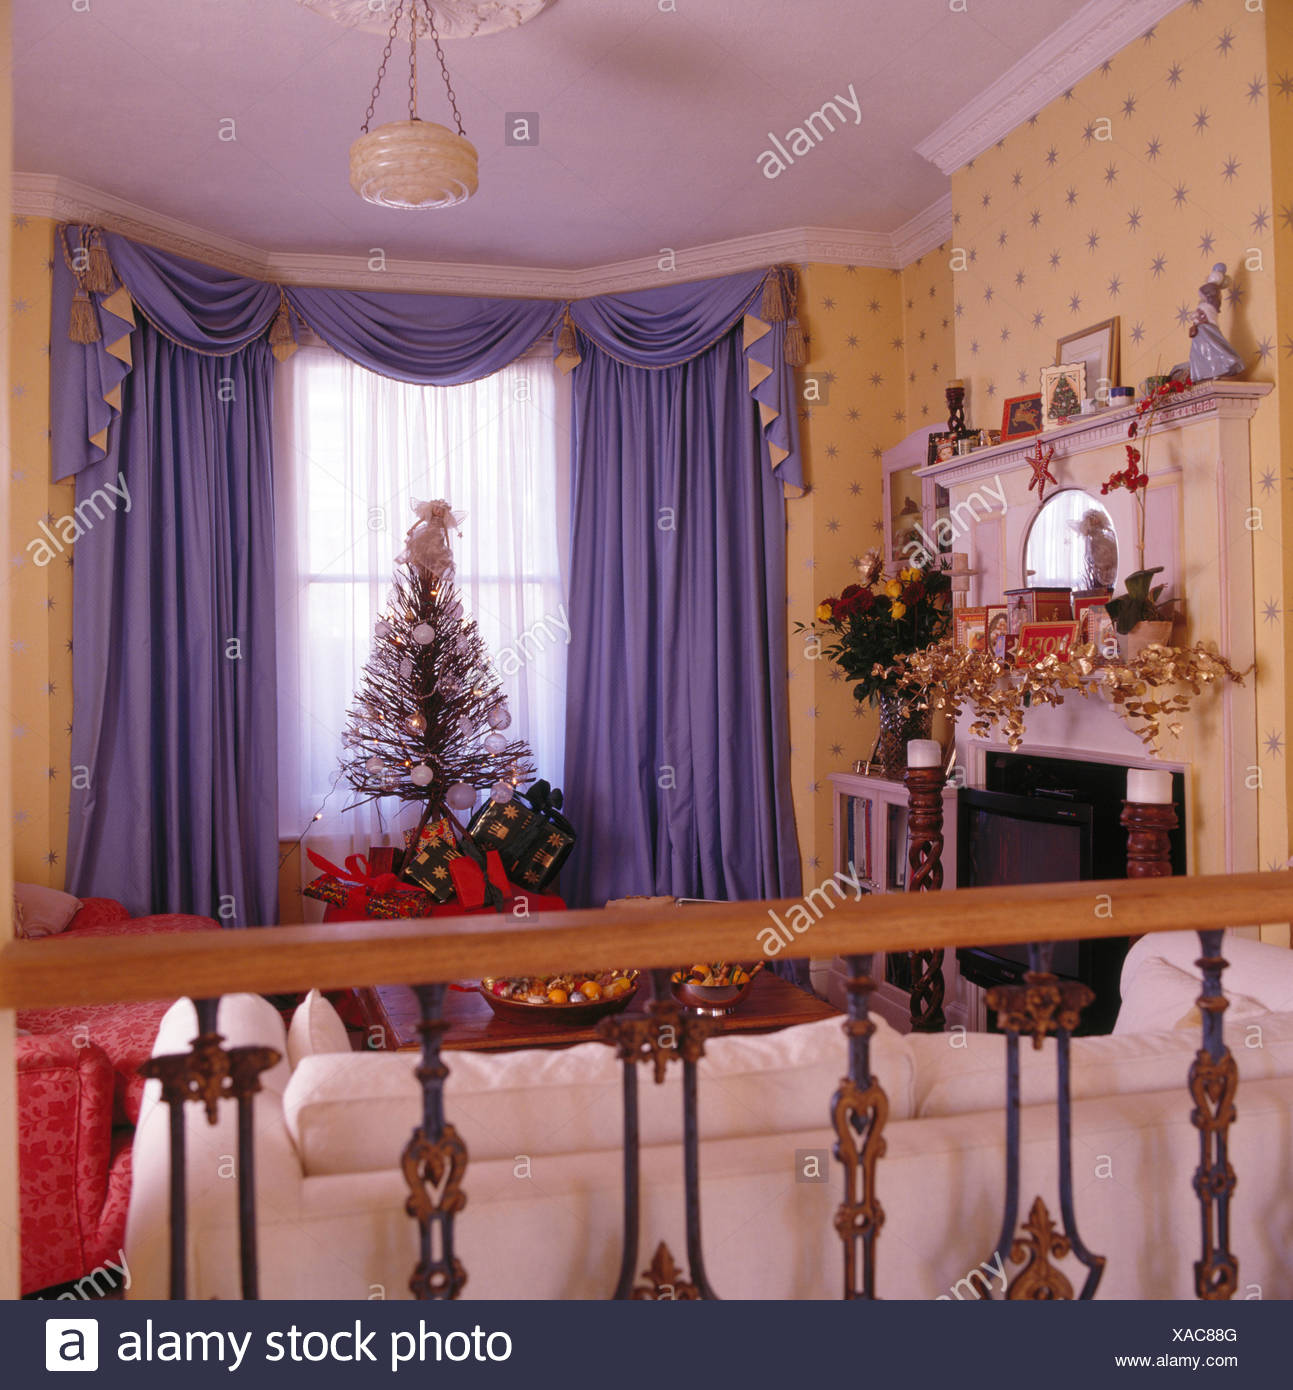 Purple Swagged And Tailed Curtains In Nineties Living Room Decorated For  Christmas